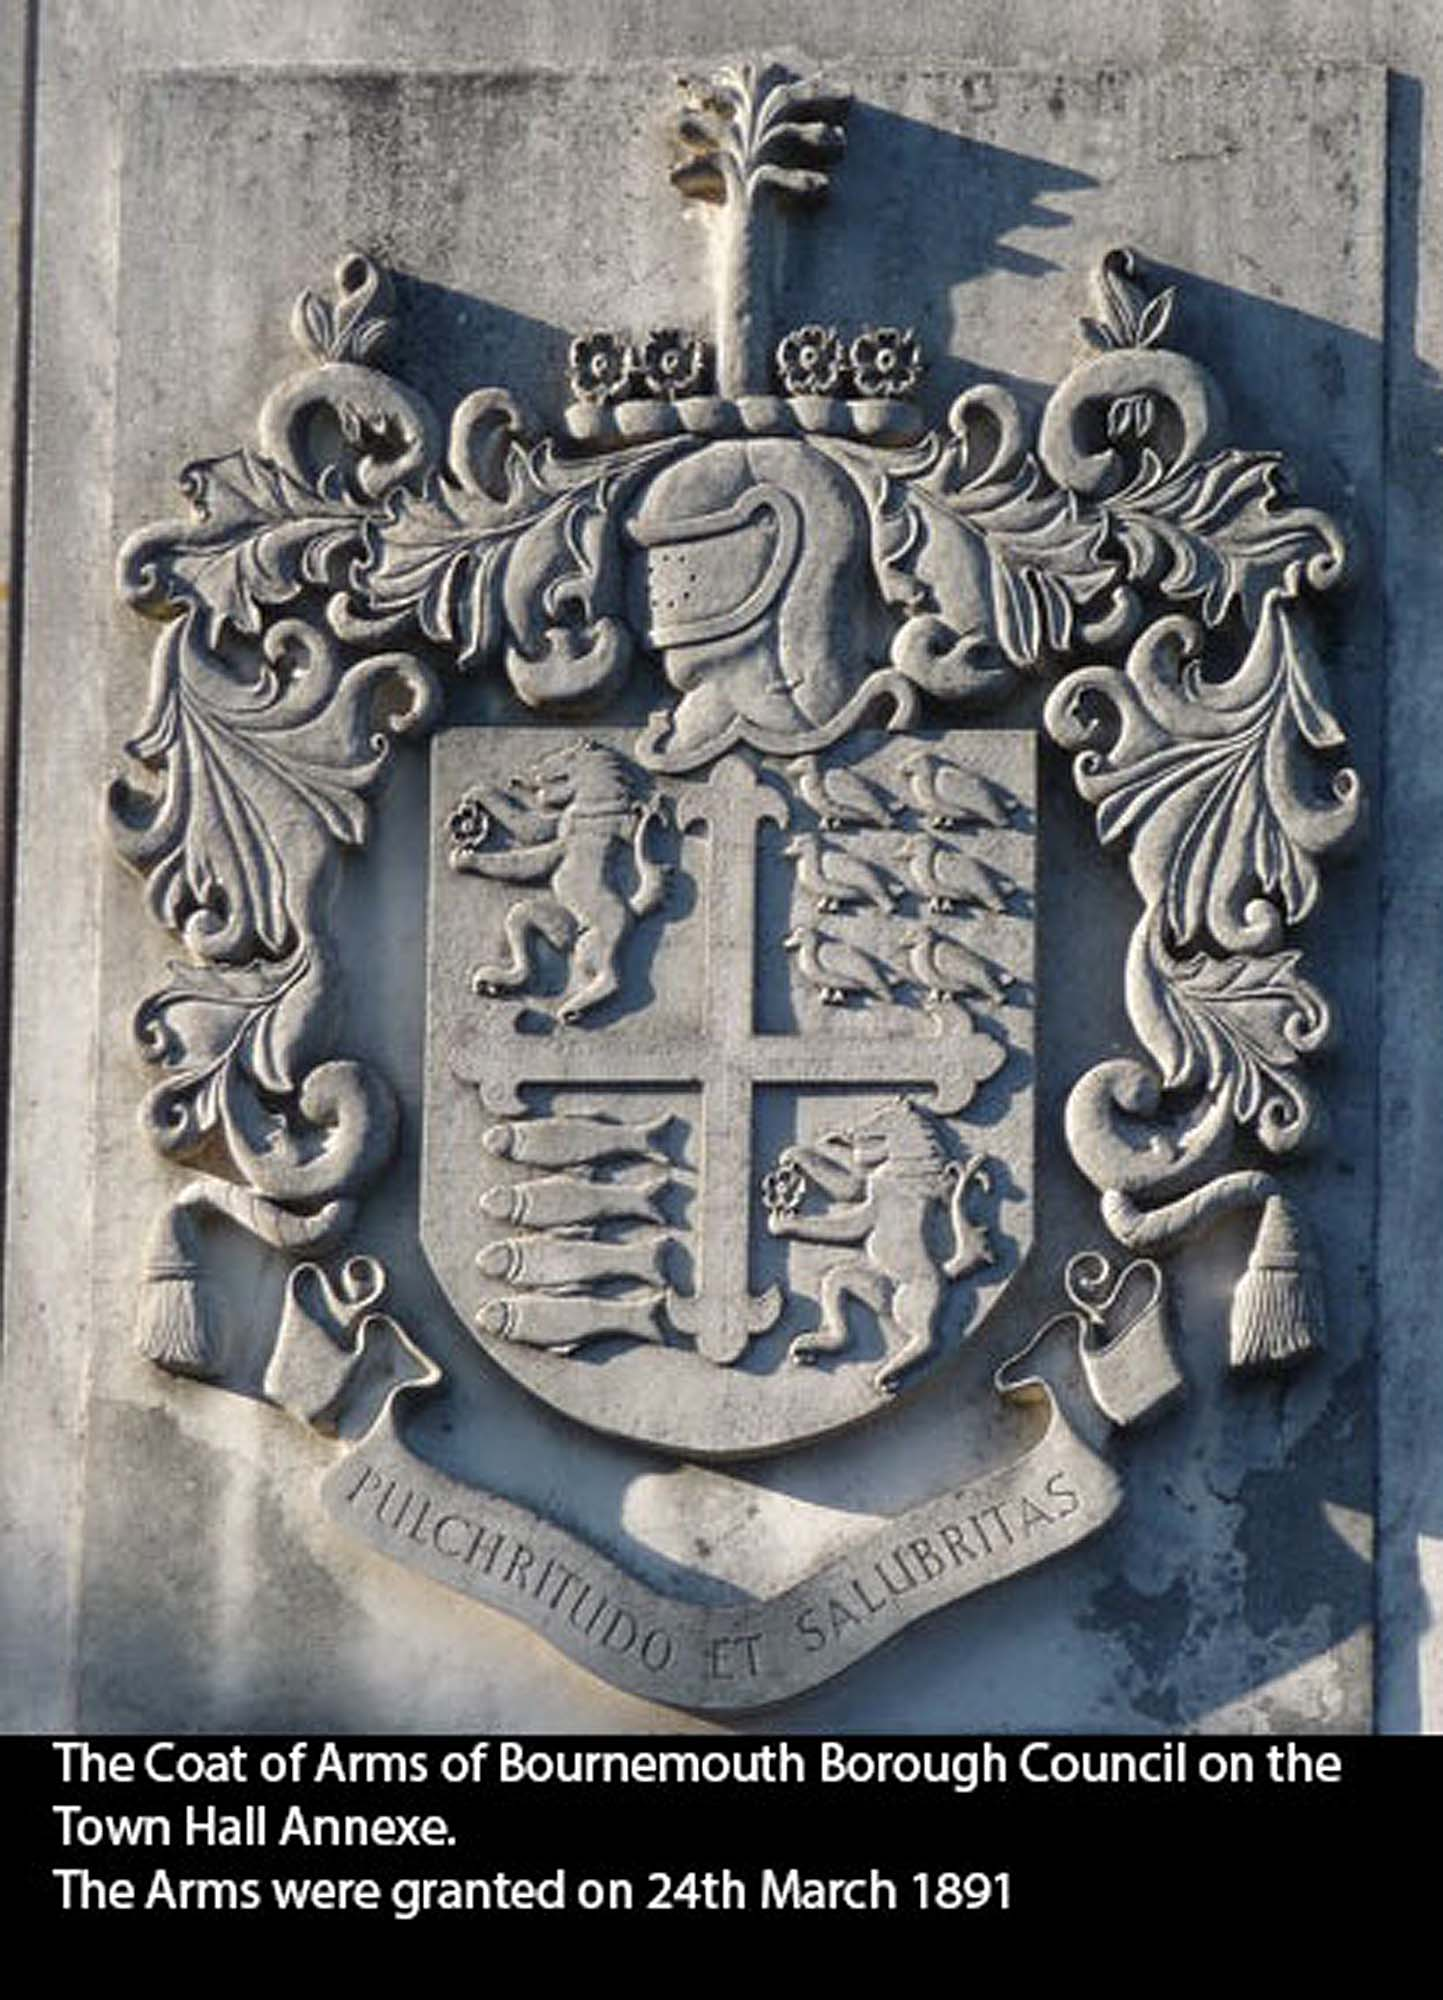 An Antique cast iron Coat of Arms of Bournemouth Borough Council